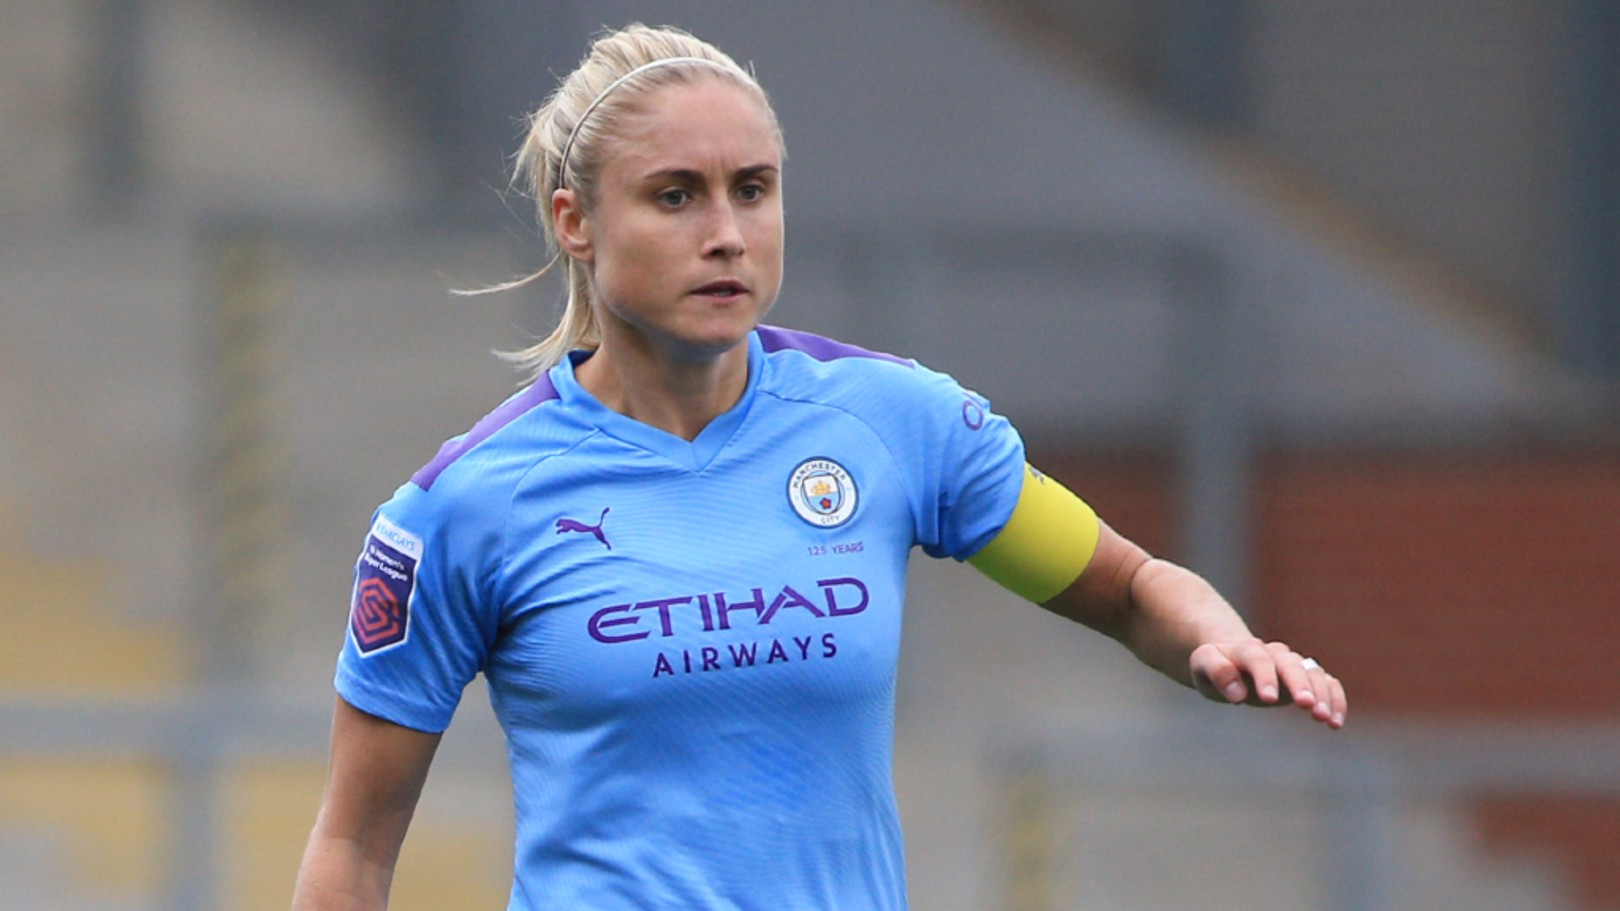 CAPTAIN'S NOTES: Steph Houghton reflects on the Conti Cup defeat to United and looks ahead to this weekend's top-of-the-table clash with Arsenal